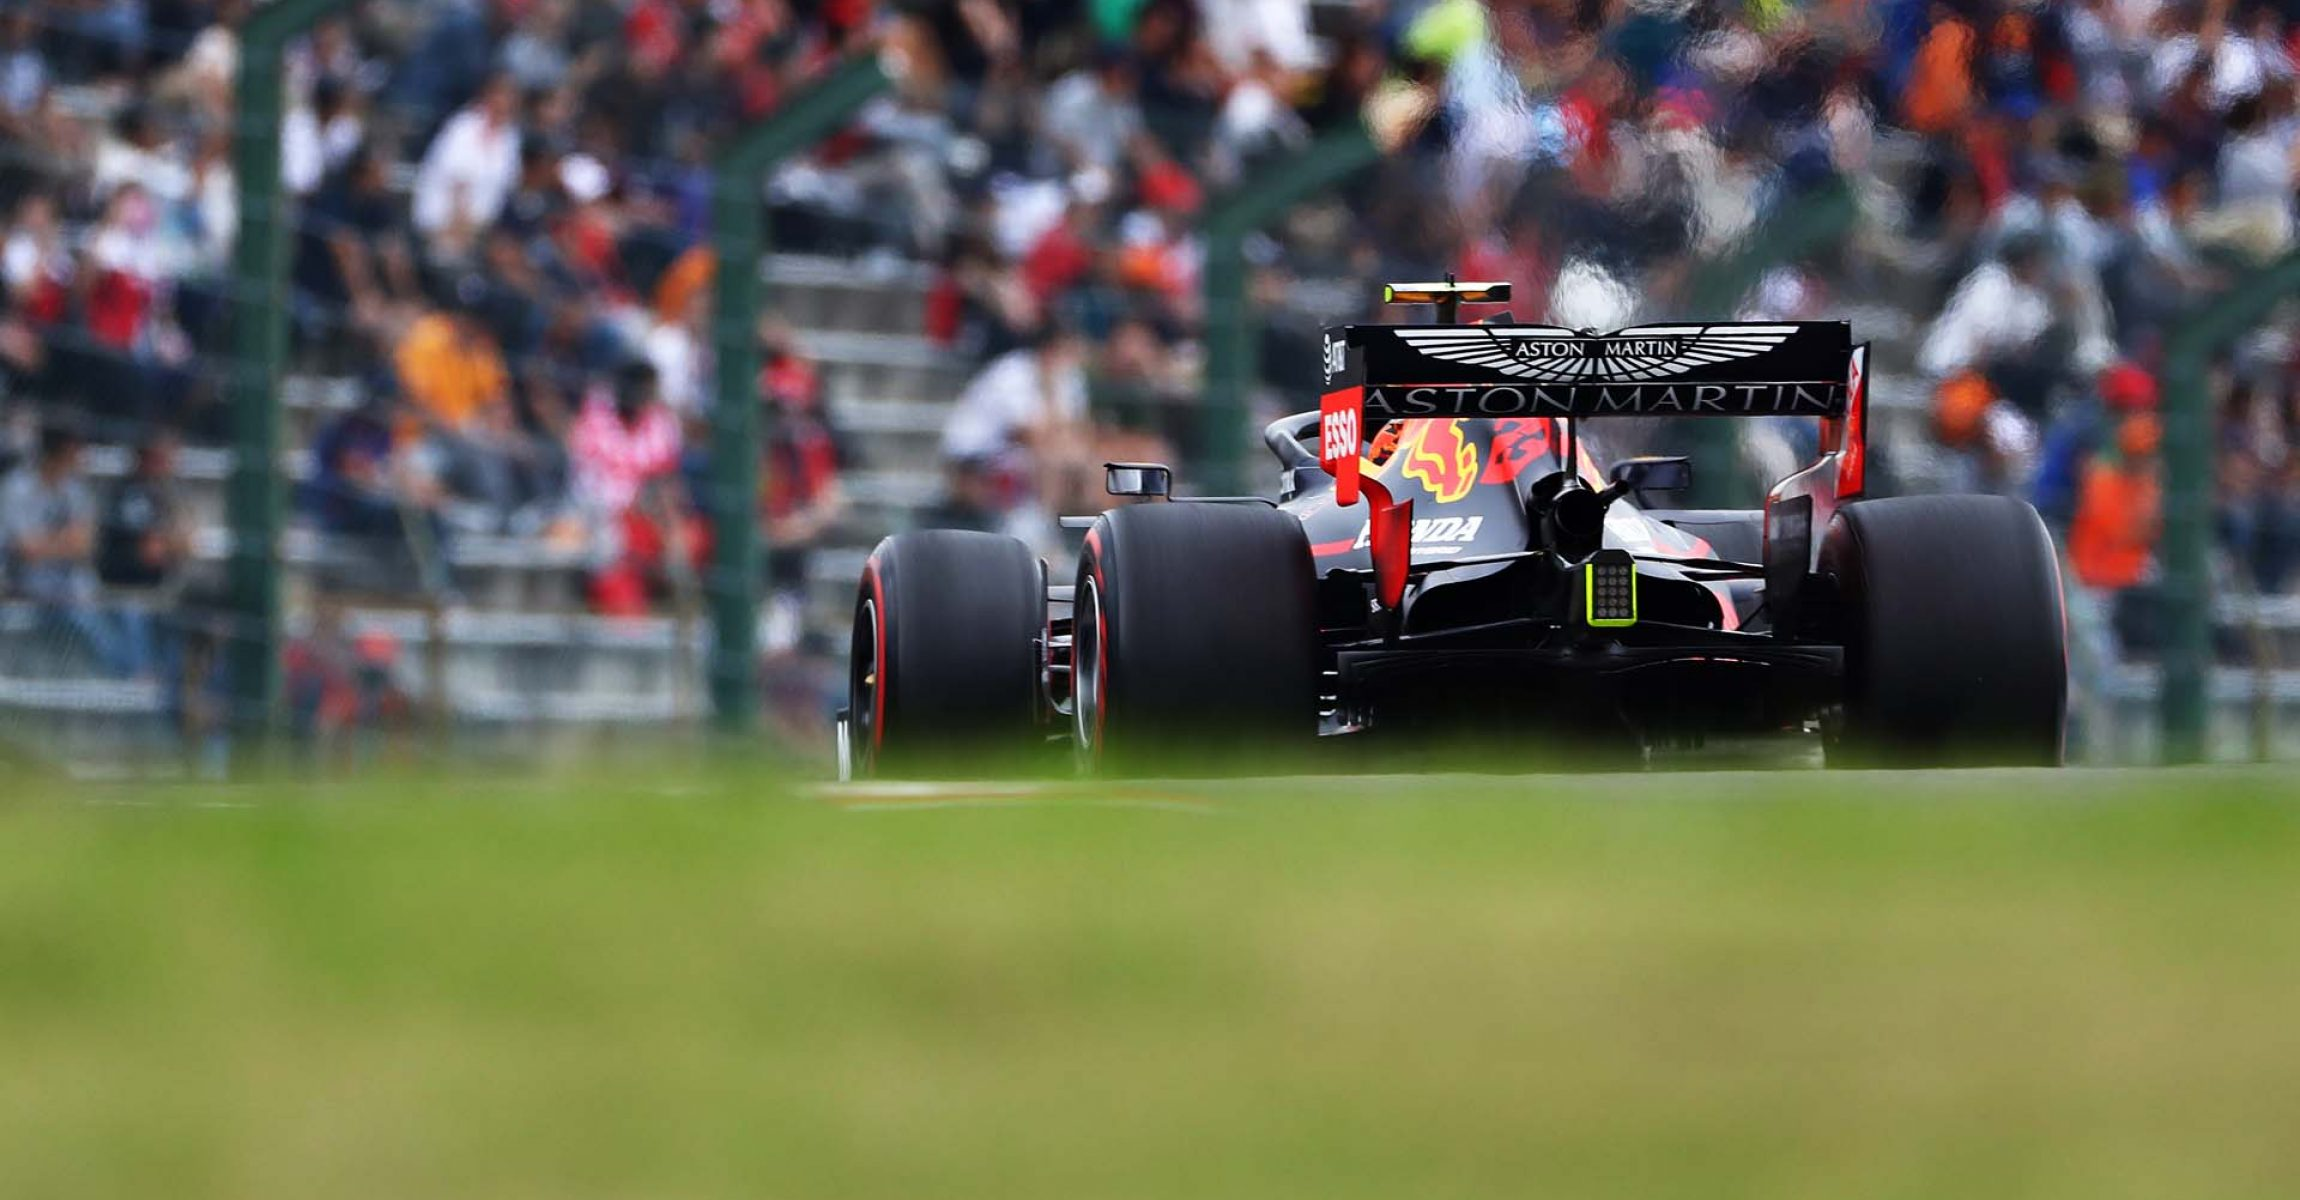 SUZUKA, JAPAN - OCTOBER 11: Alexander Albon of Thailand driving the (23) Aston Martin Red Bull Racing RB15 on track during practice for the F1 Grand Prix of Japan at Suzuka Circuit on October 11, 2019 in Suzuka, Japan. (Photo by Mark Thompson/Getty Images) // Getty Images / Red Bull Content Pool // AP-21UAYSGCW1W11 // Usage for editorial use only //